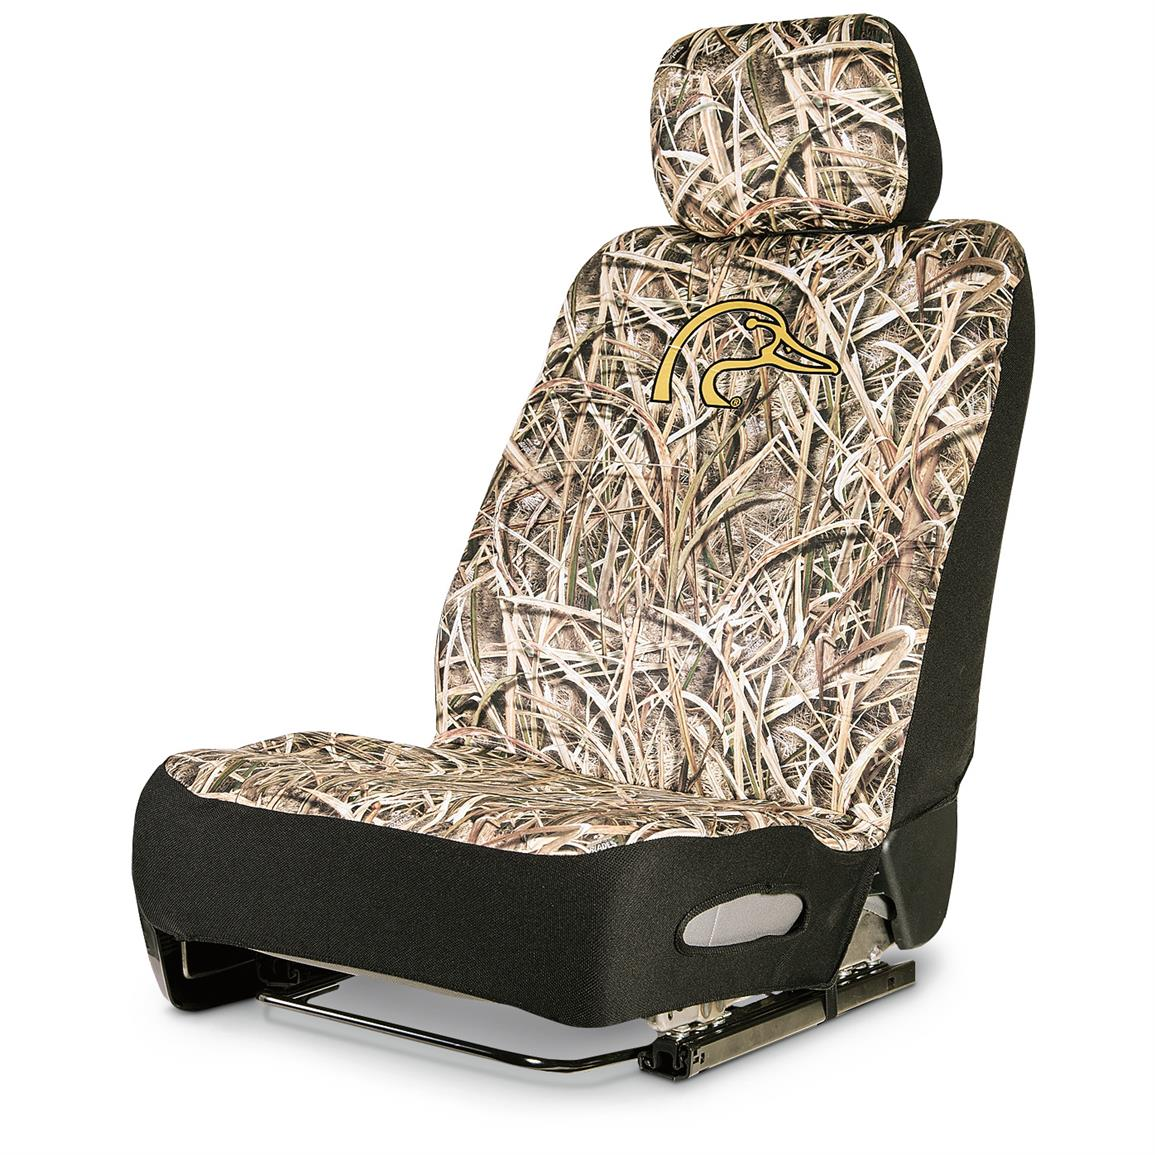 Neoprene Universal Low-back Camo Seat Cover, Ducks Unlimited